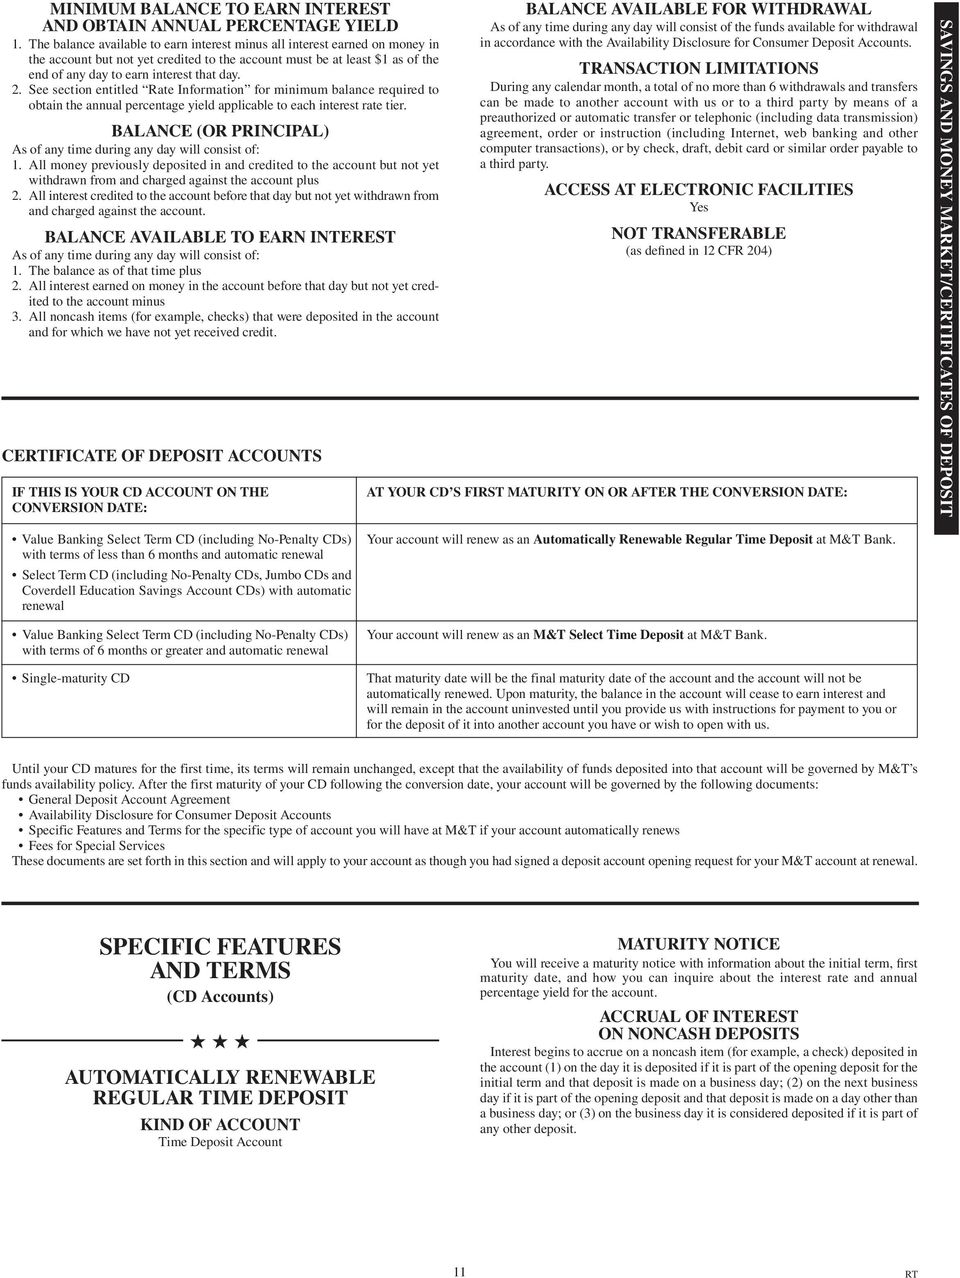 CONSUMER DEPOSIT ACCOUNT TERMS AND CONDITIONS - PDF